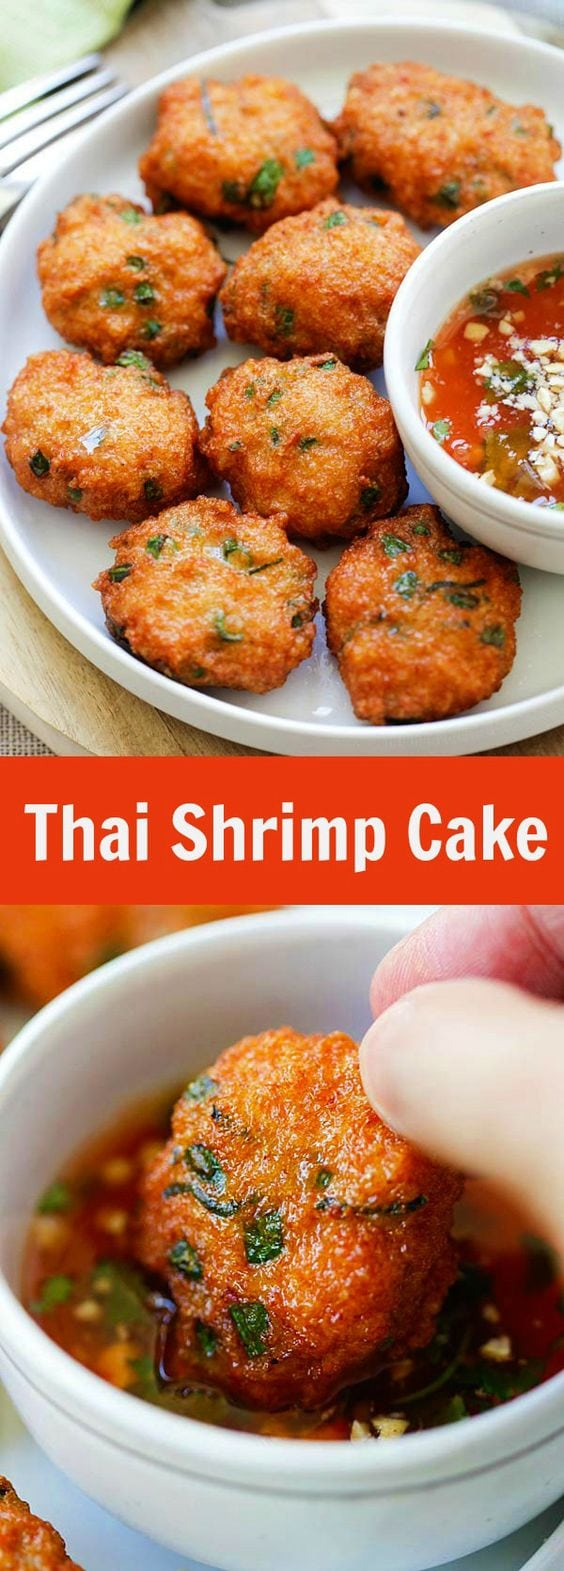 Thai Shrimp Cake - best Thai shrimp cake recipe loaded with shrimp, red curry, long beans and served with sweet chili sauce. So good | rasamalaysia.com